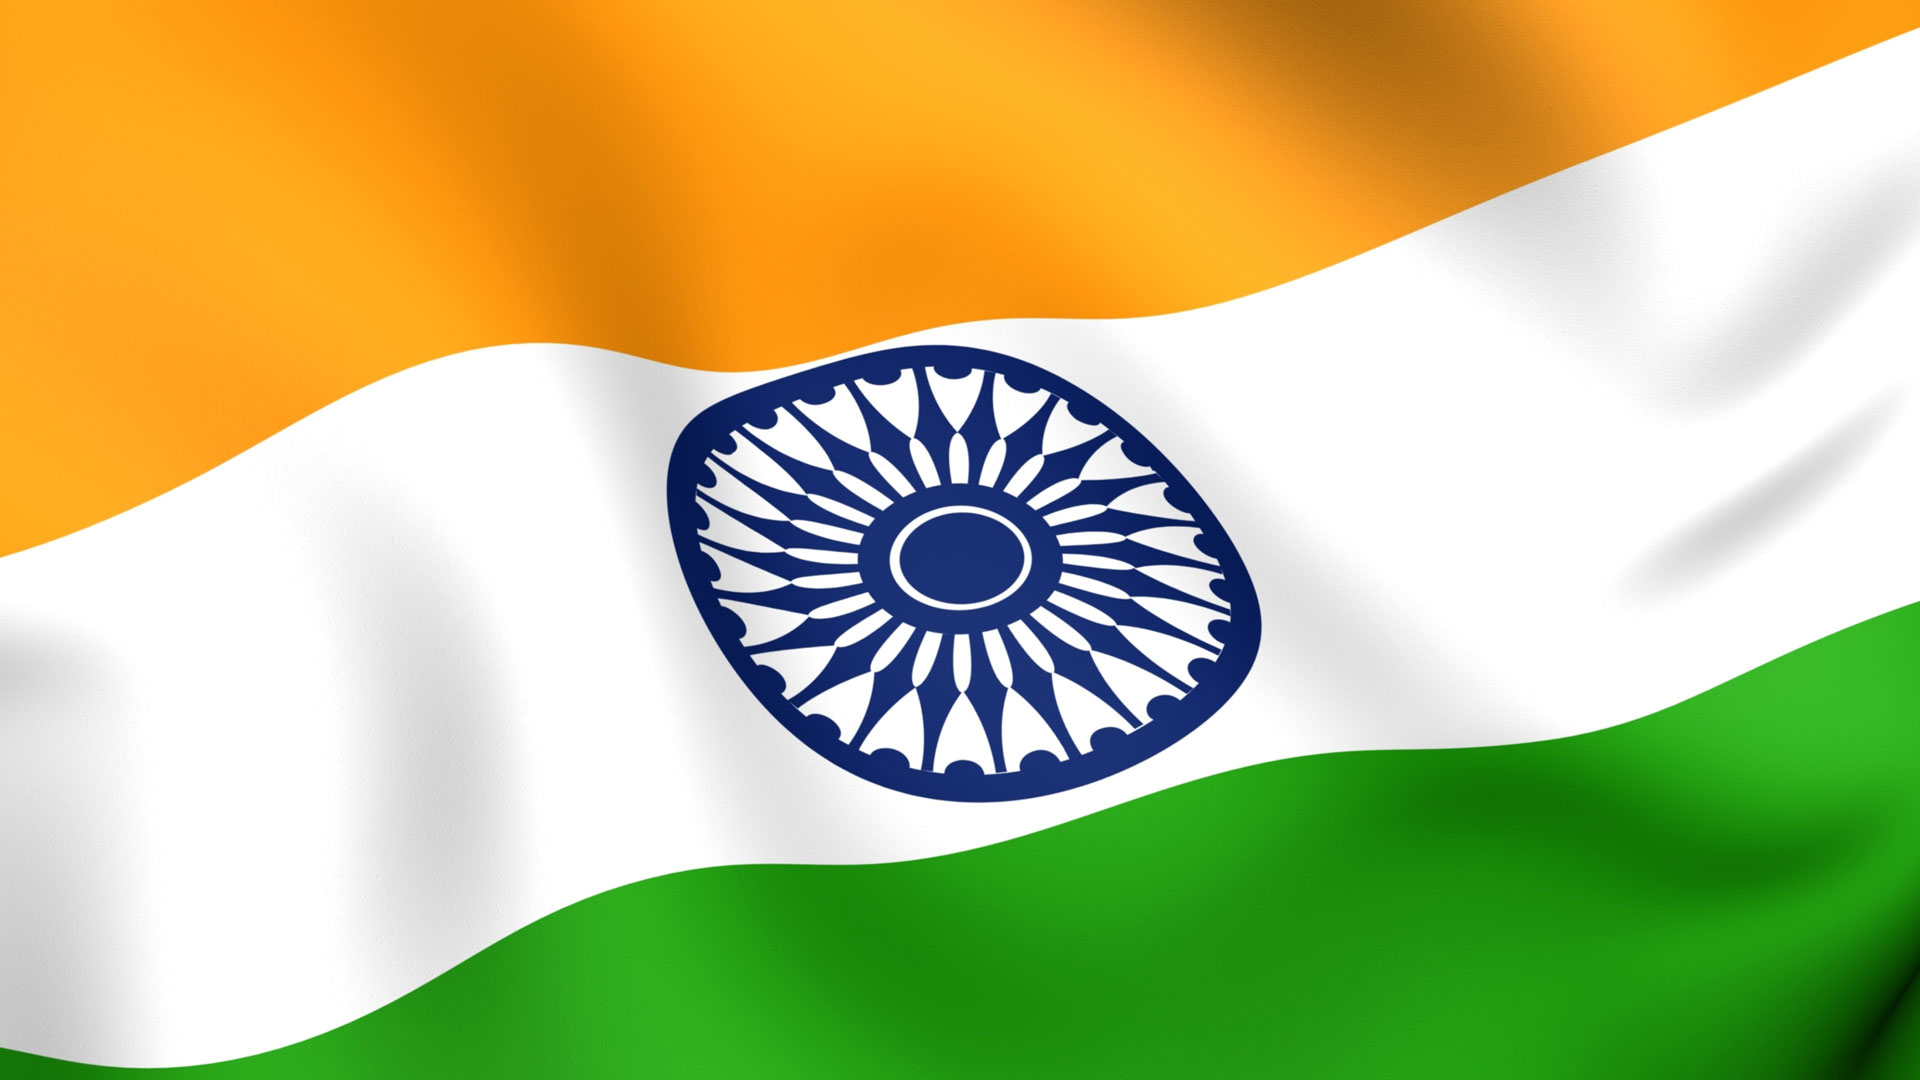 Indian Flag Wallpapers Images Pictures Free Download